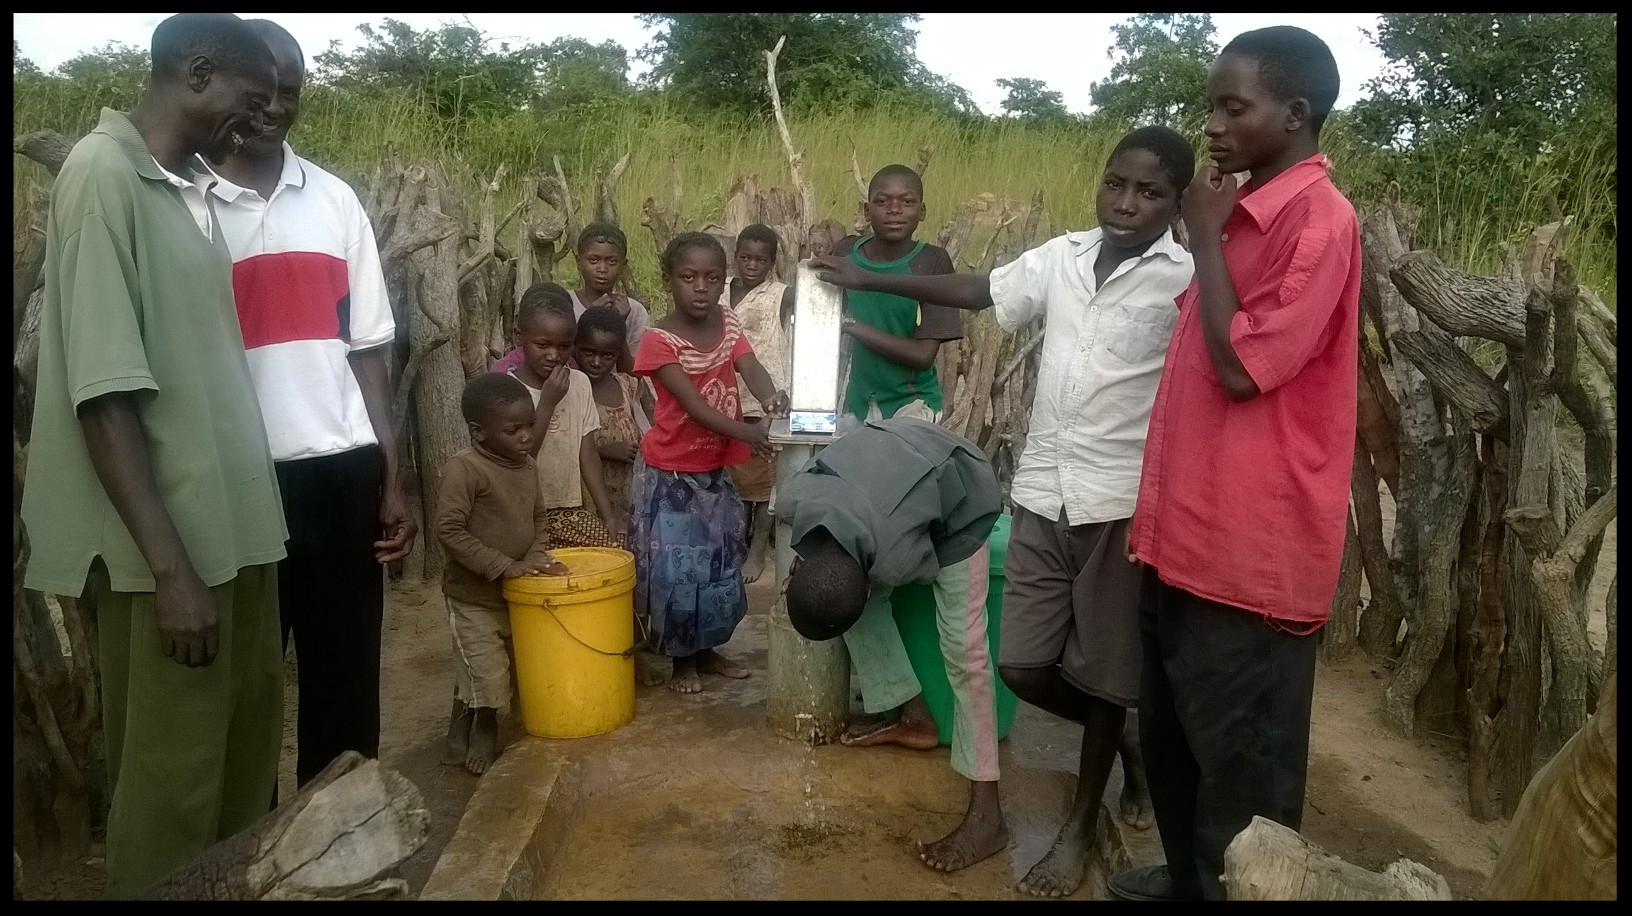 Community members of Kabele, Zambia rejoice over their well that was funded by the Sharptown Congregation. This is one of the many wells Sharptown has funded. We are so thankful for their passion and partnership!